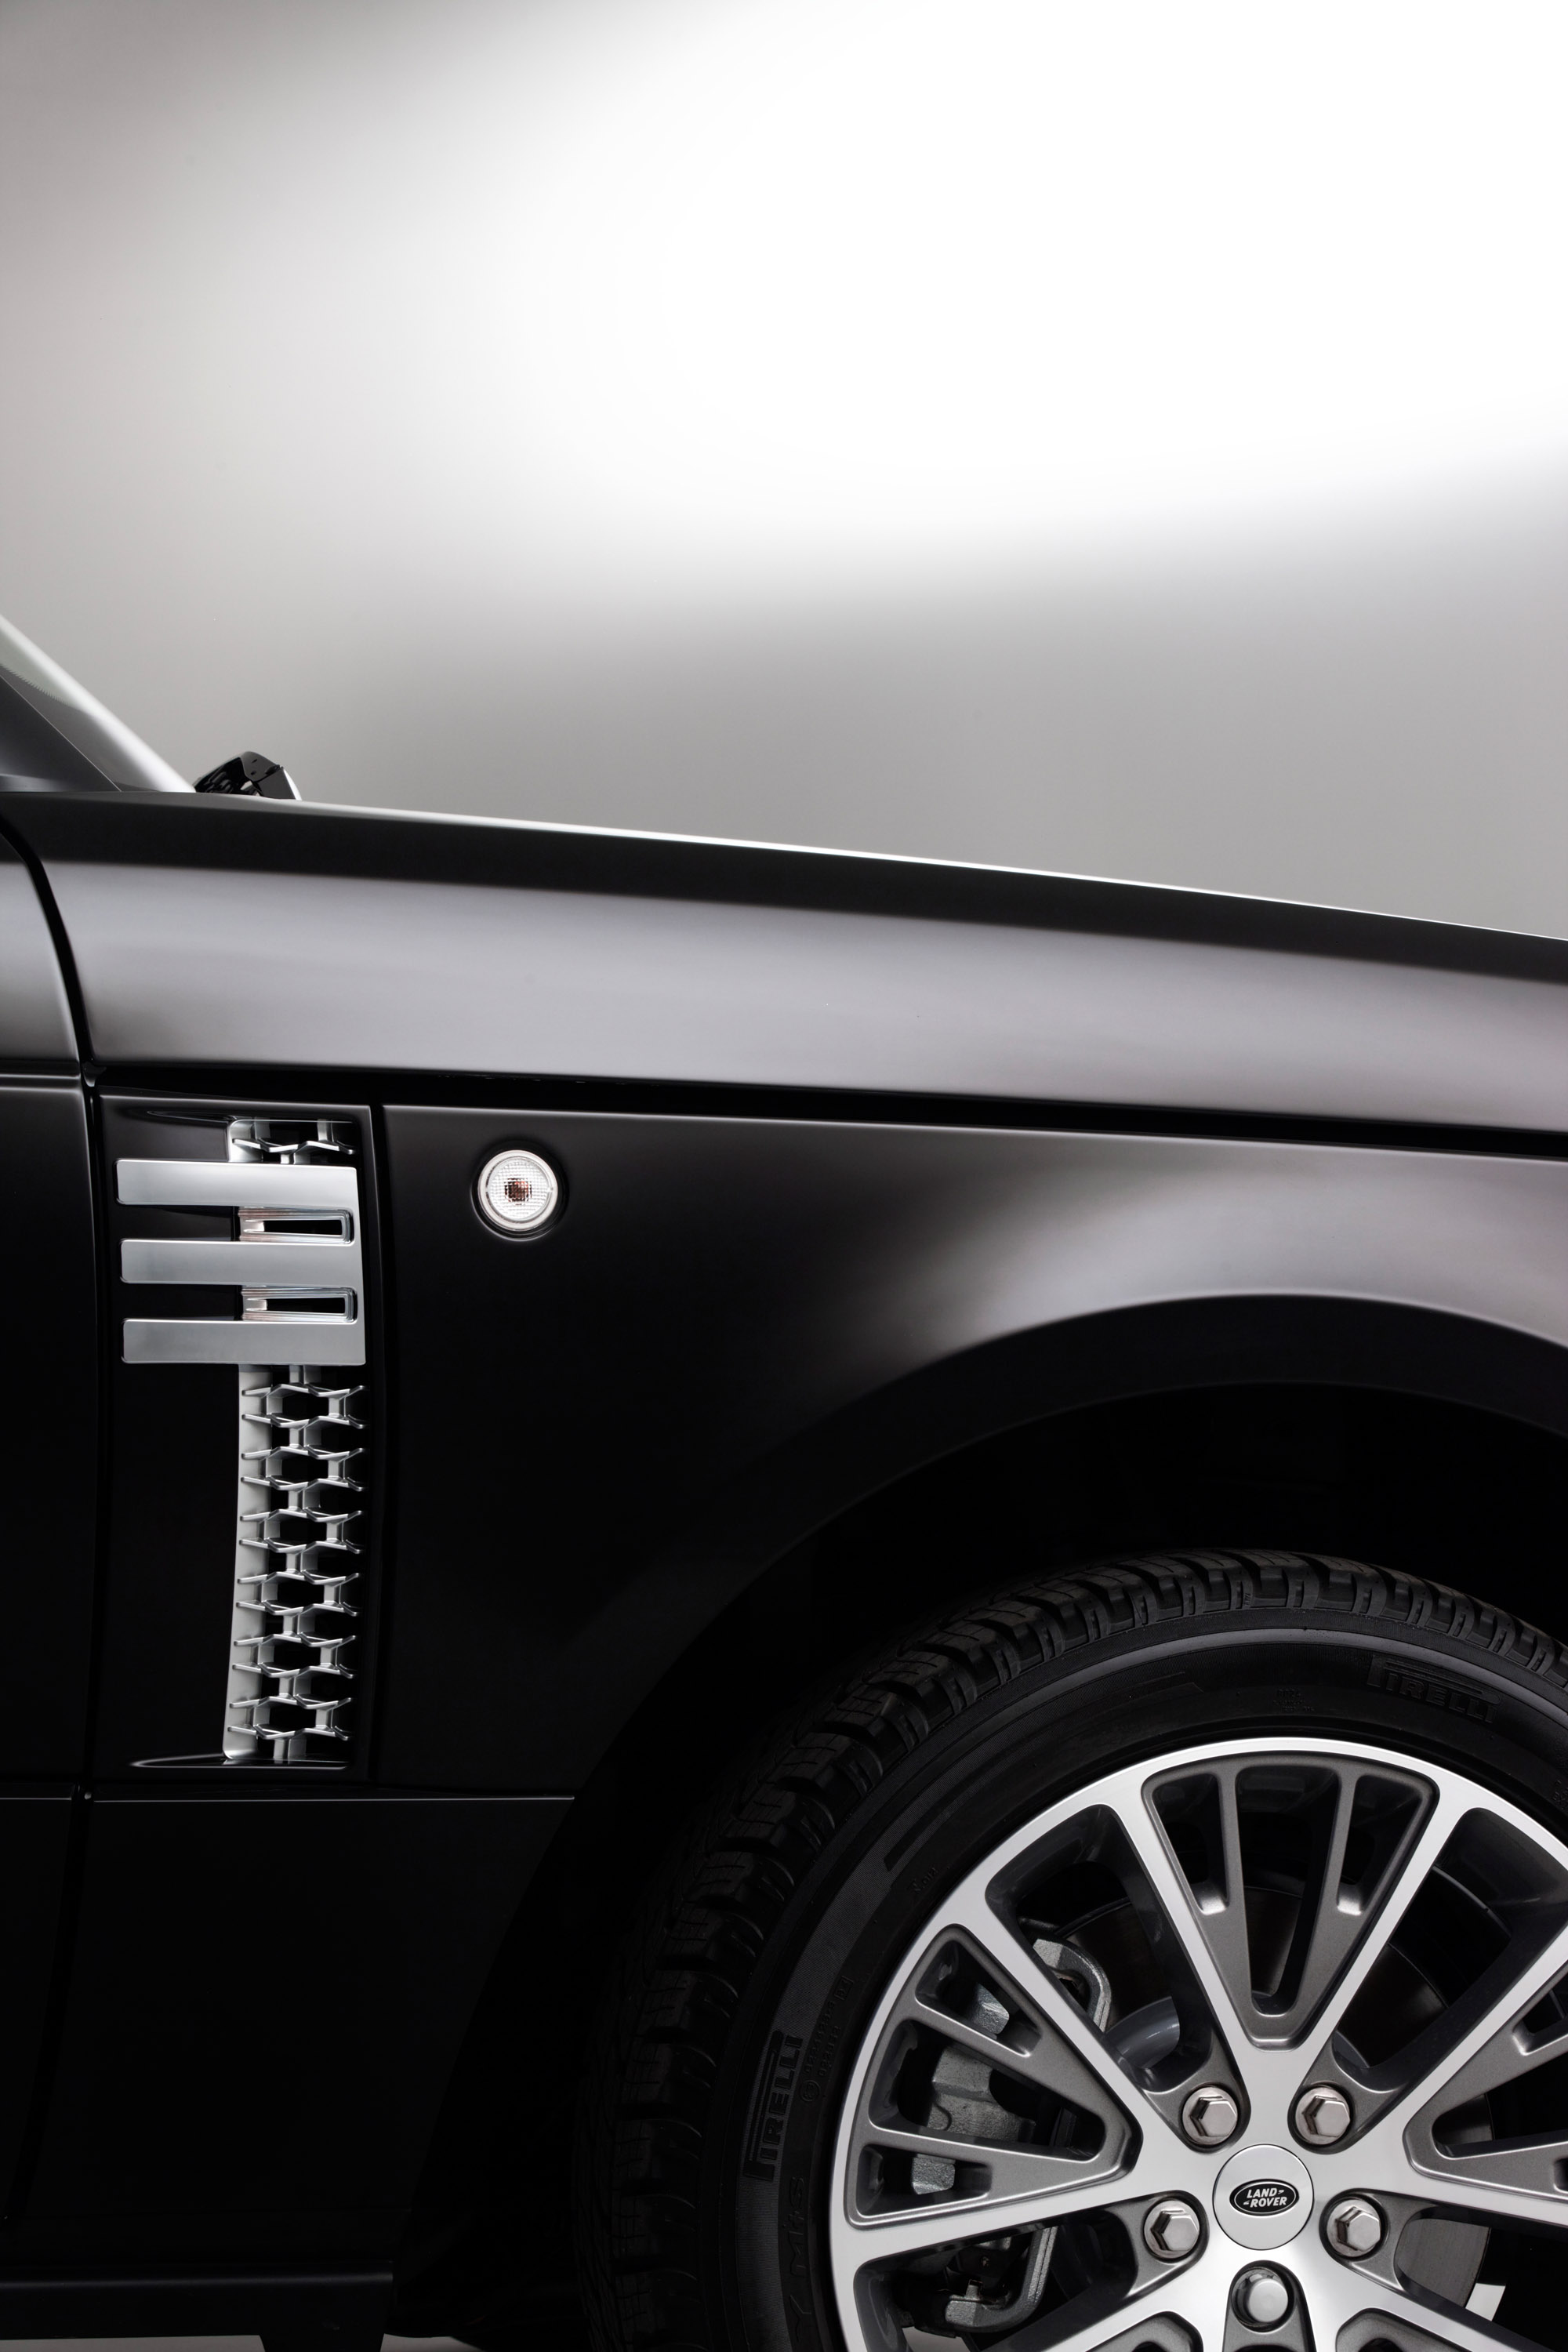 https://www.automobilesreview.com/gallery/2011-range-rover-autobiography-black-40th-anniversary-limited-edition/2011-range-rover-autobiography-black-40th-anniversary-limited-edition-05.jpg